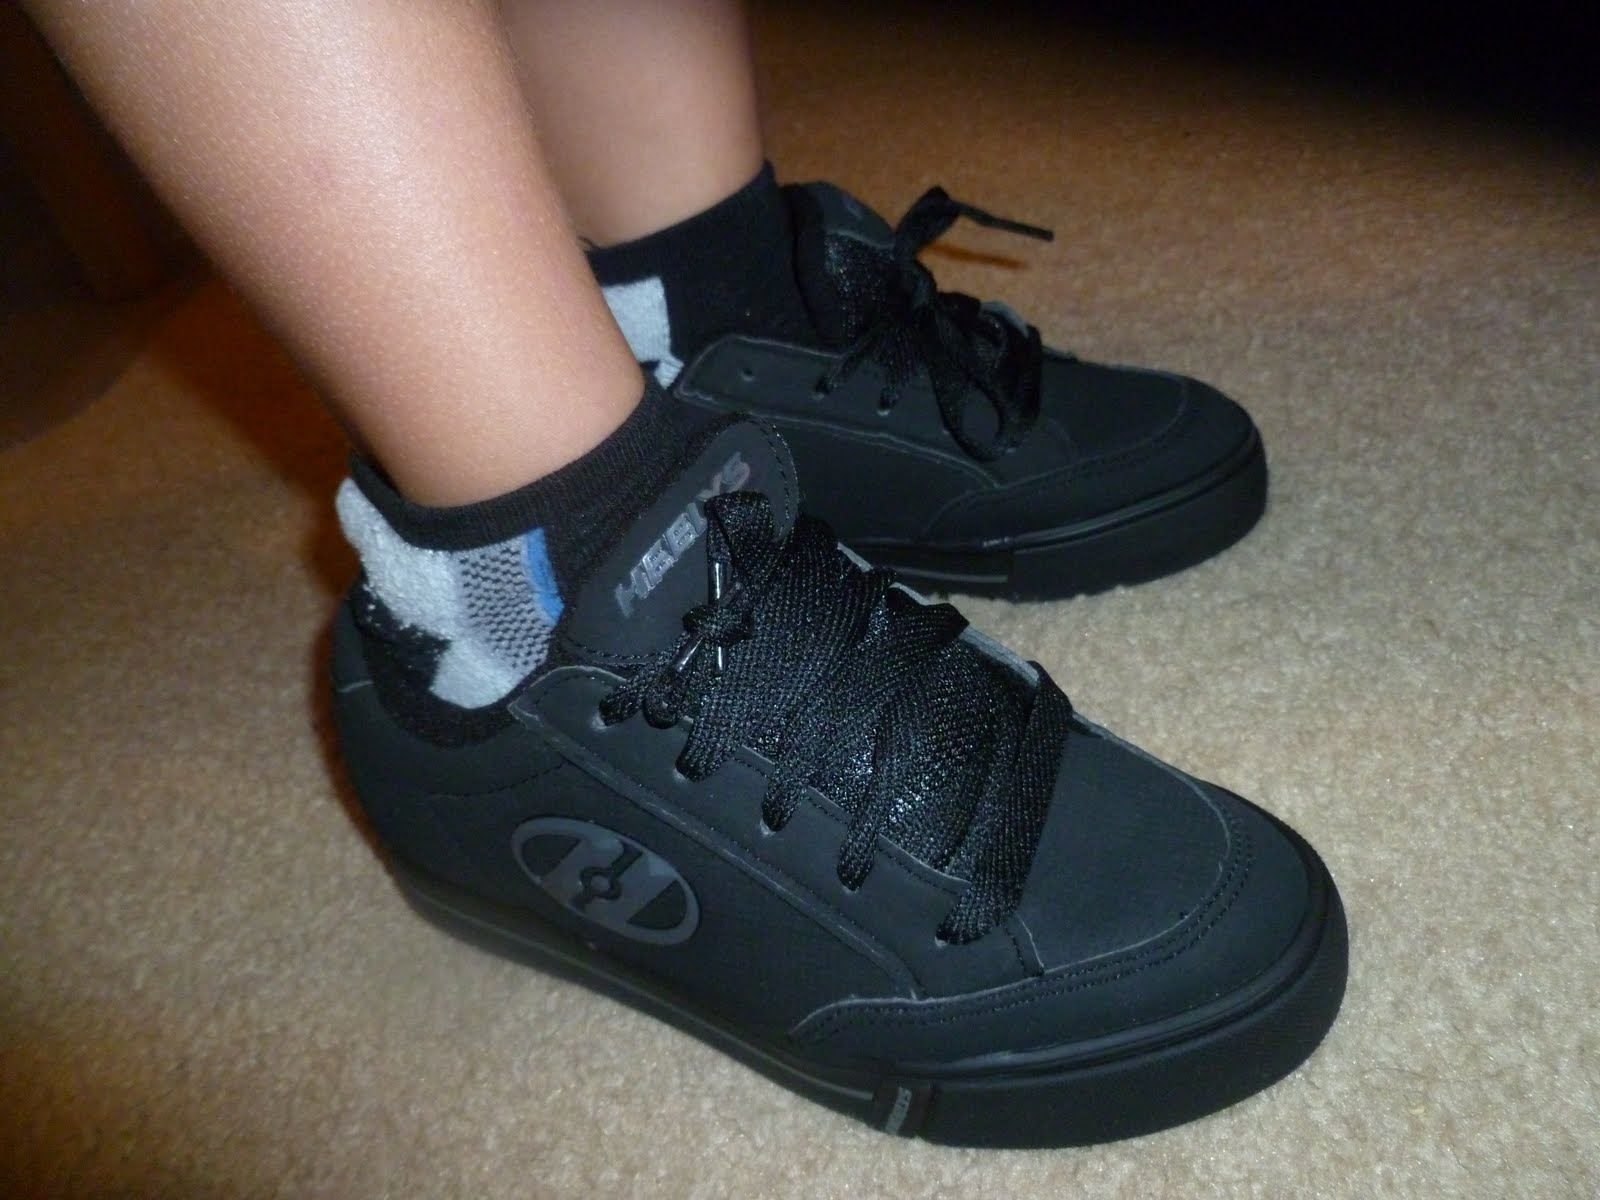 Heely skate shoes reviews - After Watching The How To Instructions We Practiced In The Livingroom On The Carpet Then Went To The Next Step Outside With Safety Gear Of Coarse